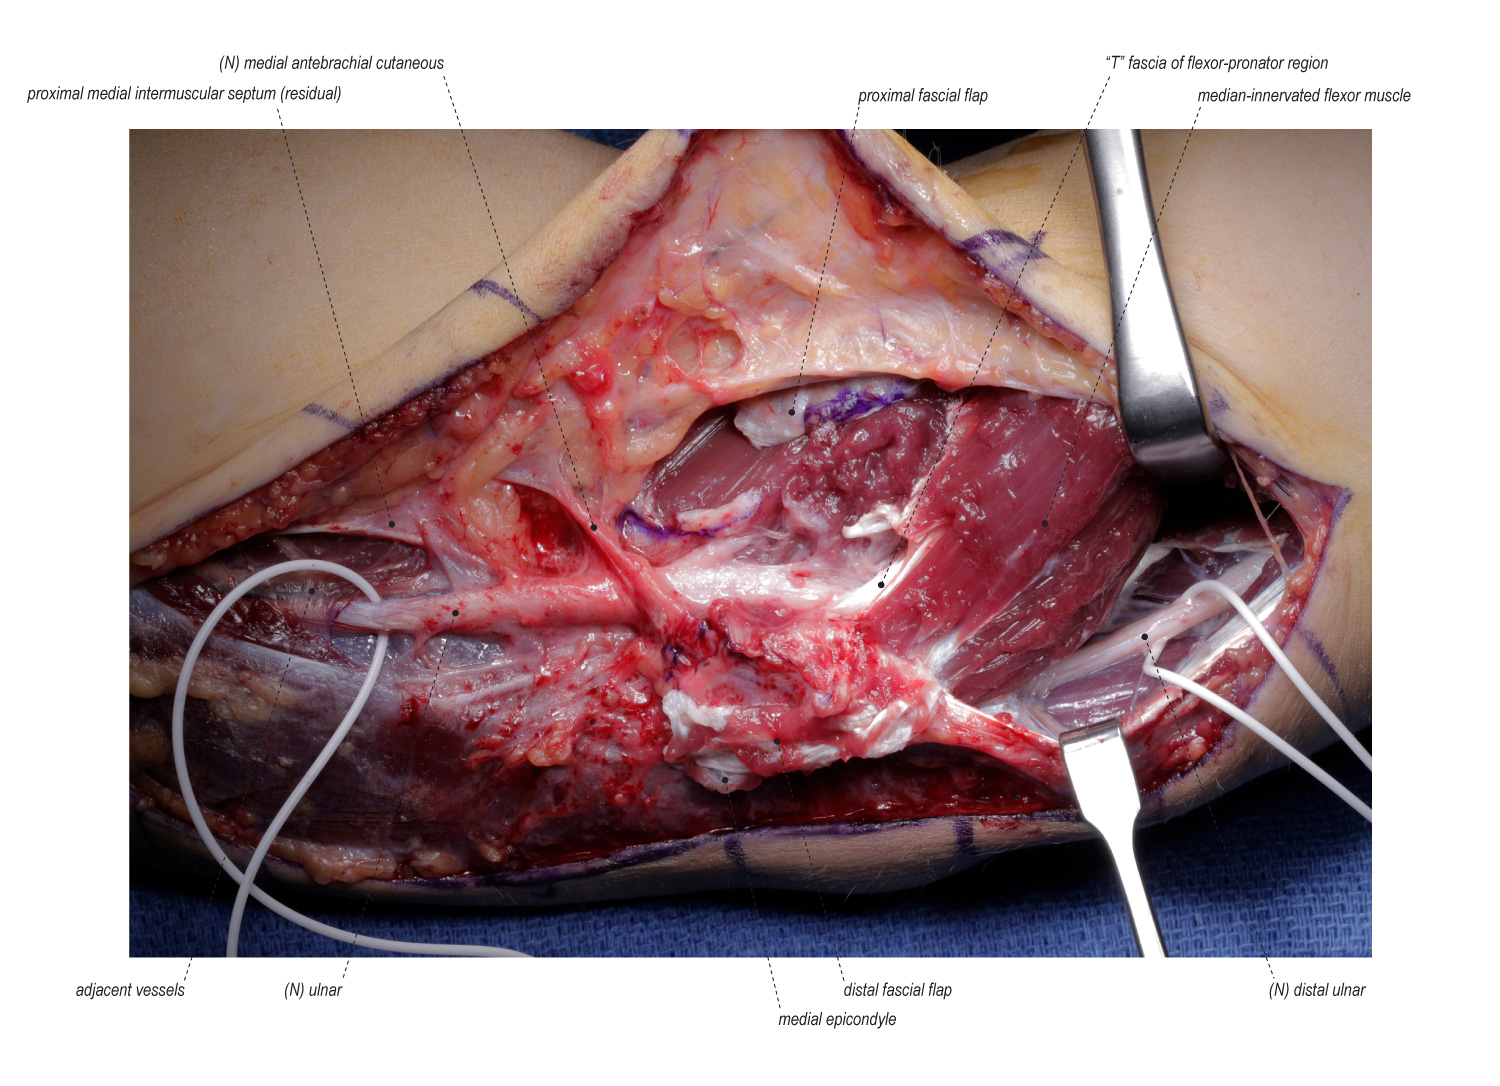 Revision Ulnar Nerve Transposition Following Failed Submuscular